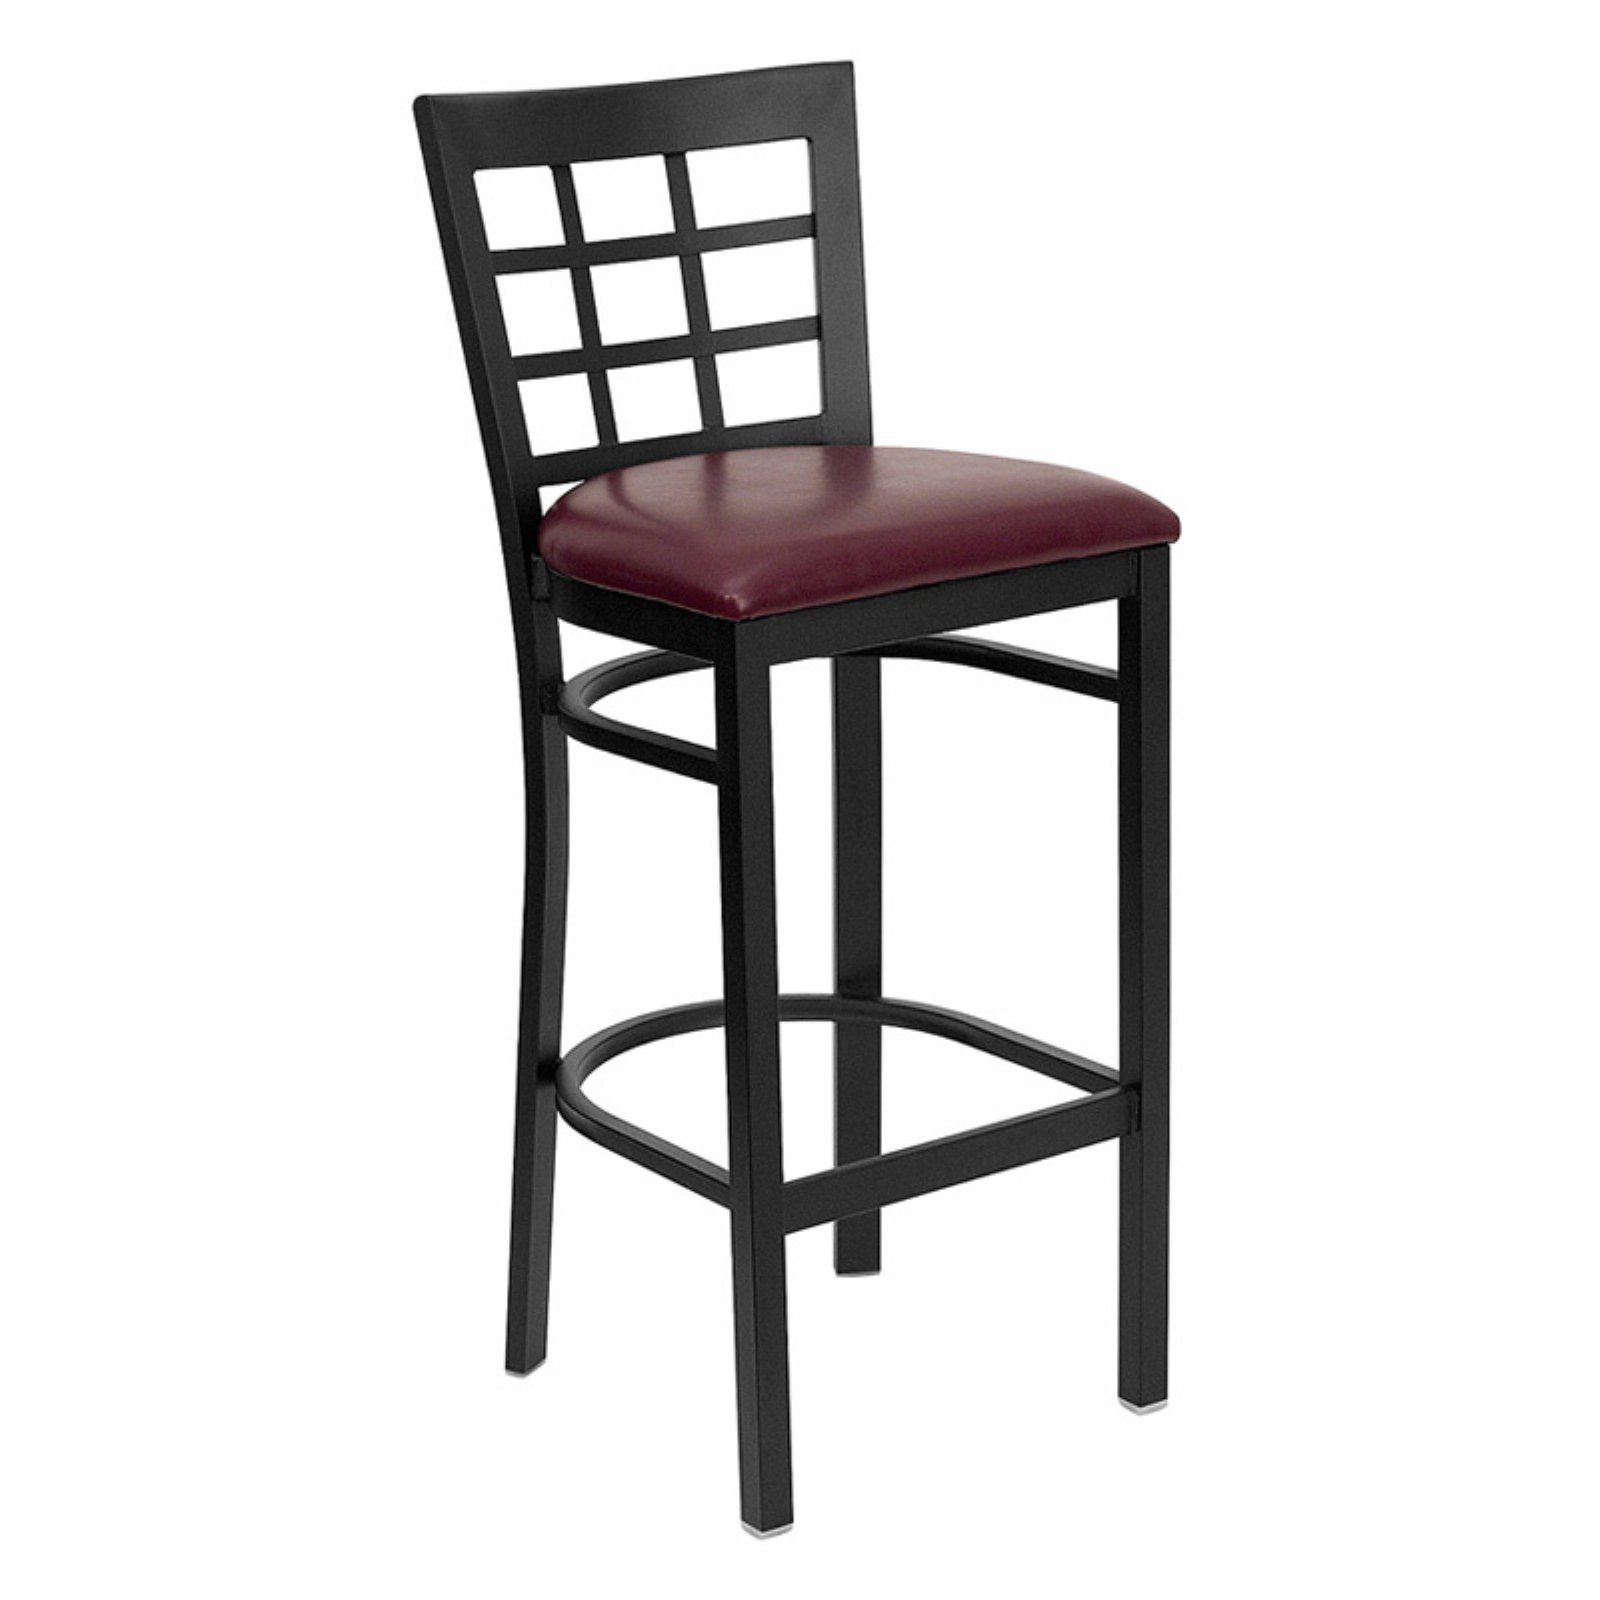 "Metal Window Back Bar Stool 31"", Burgundy"